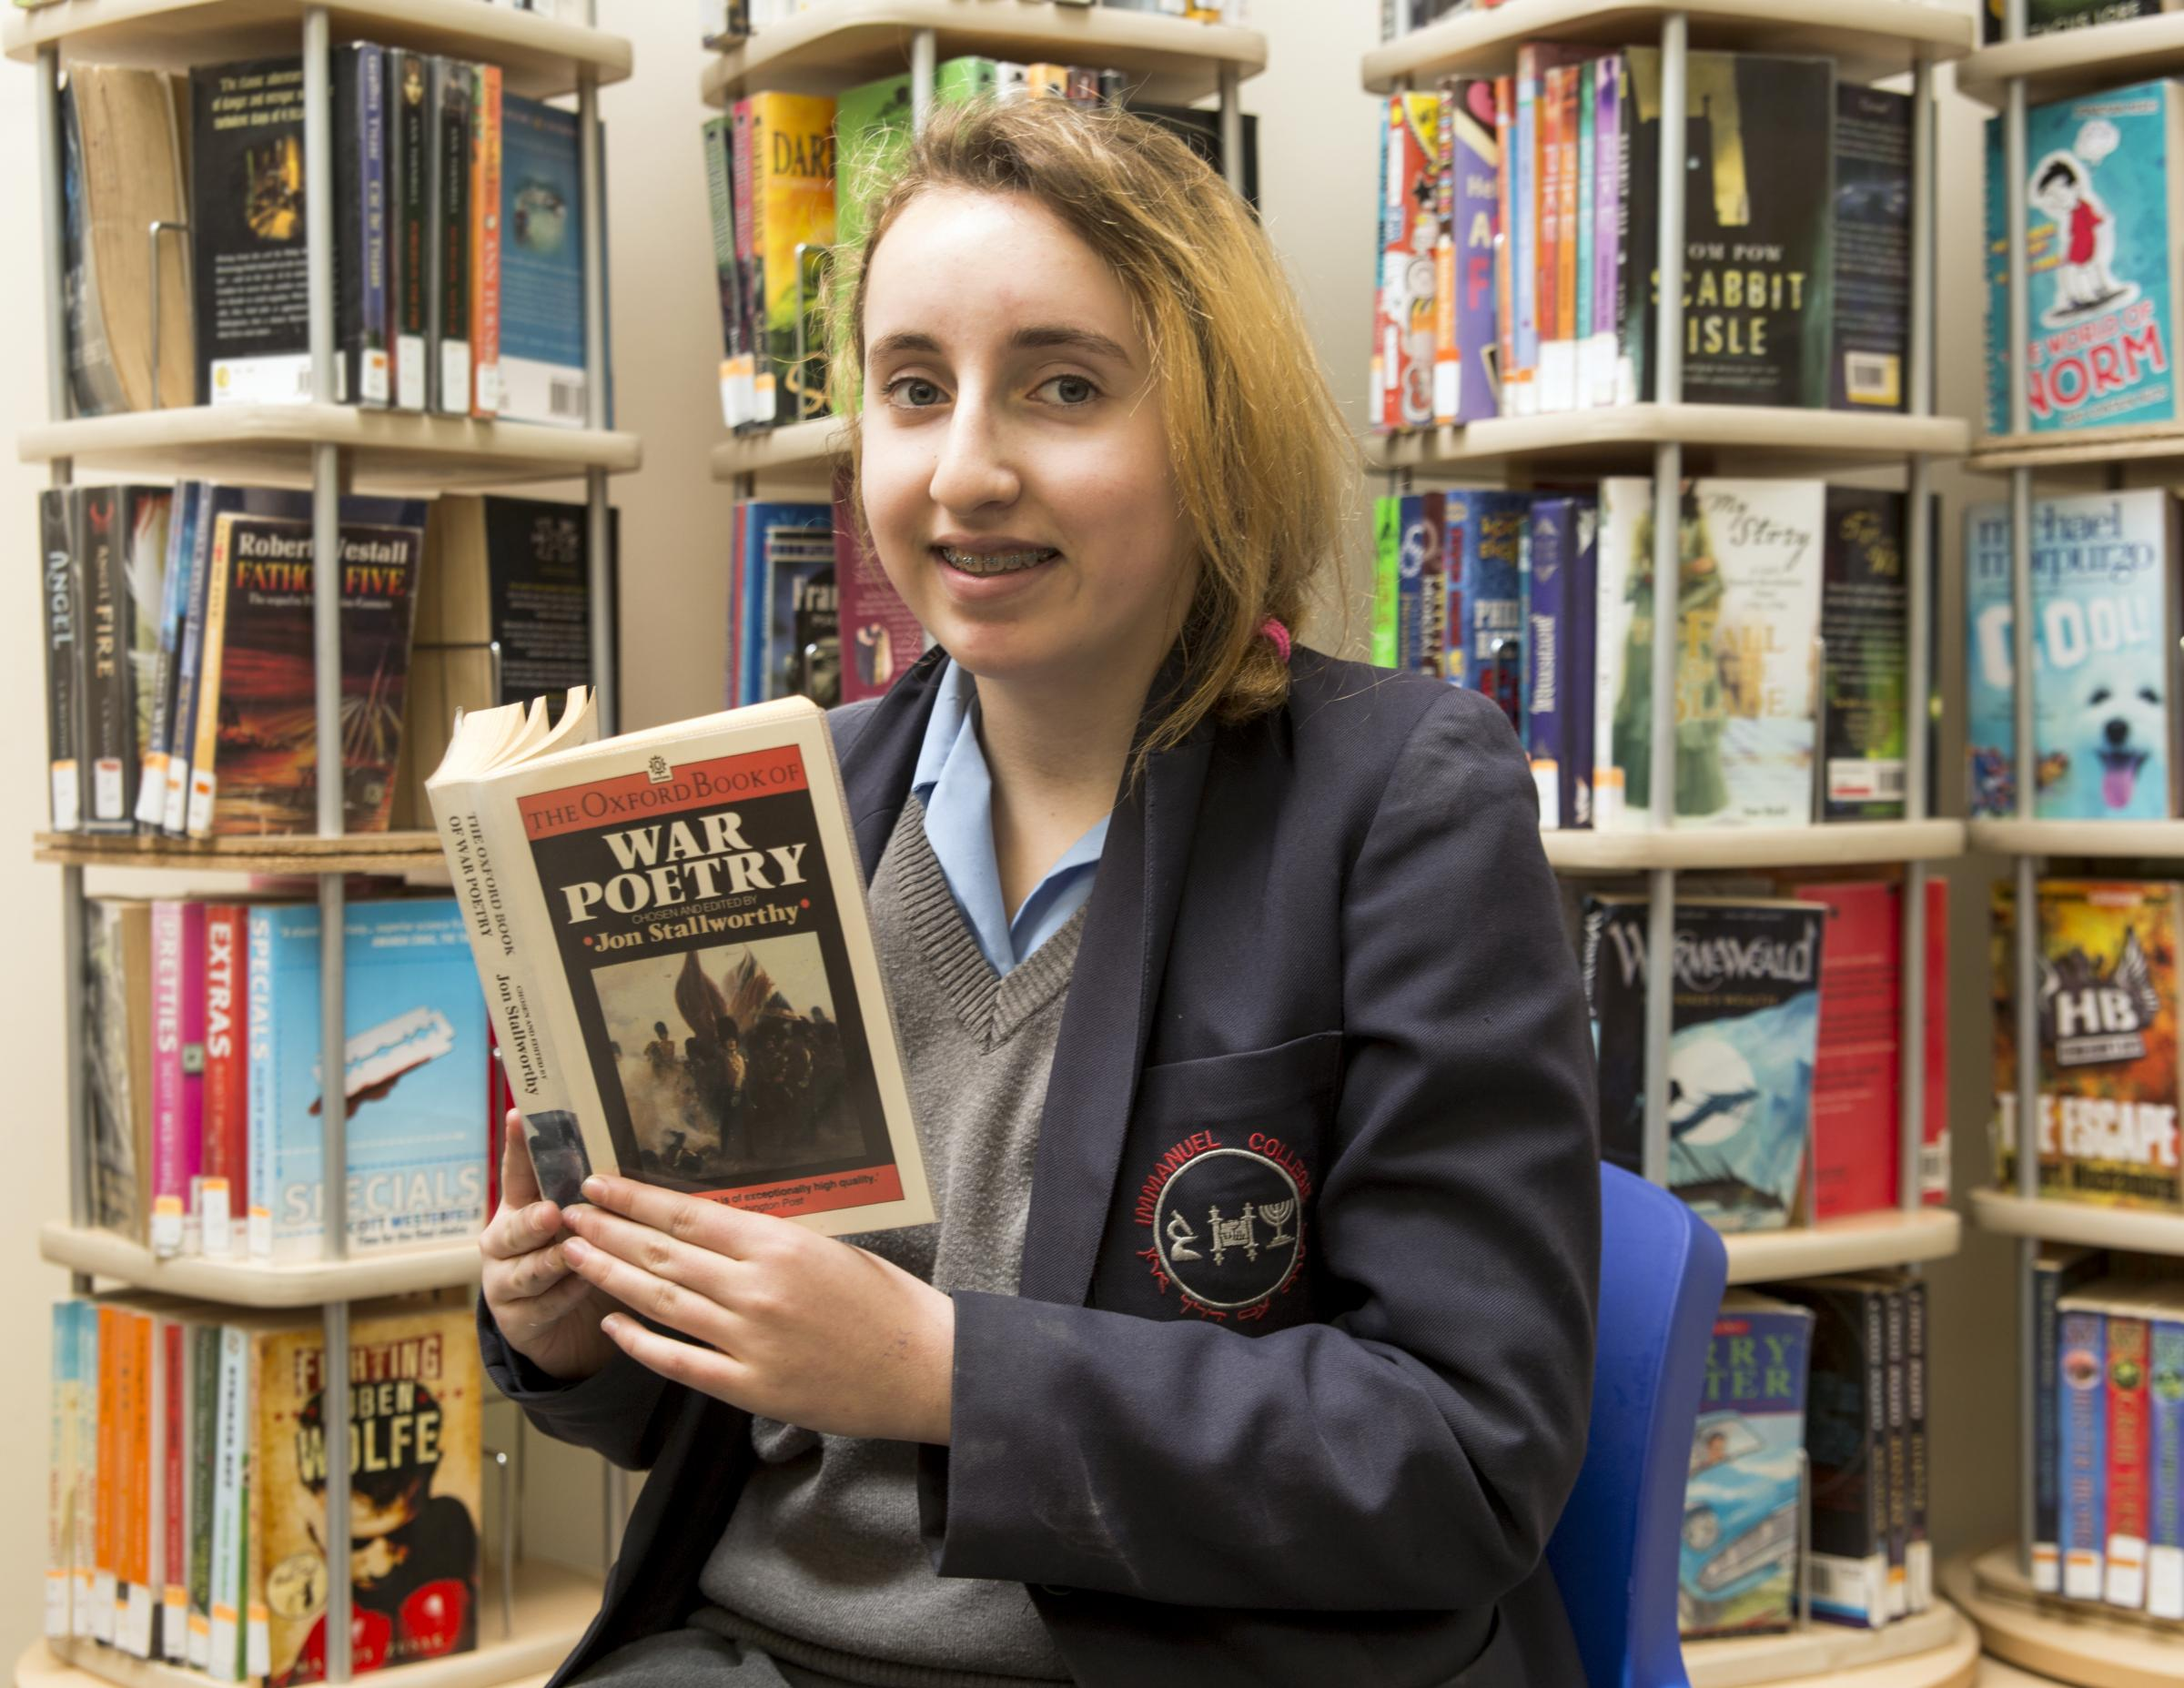 Bushey schoolgirl praised during Jewish Book We